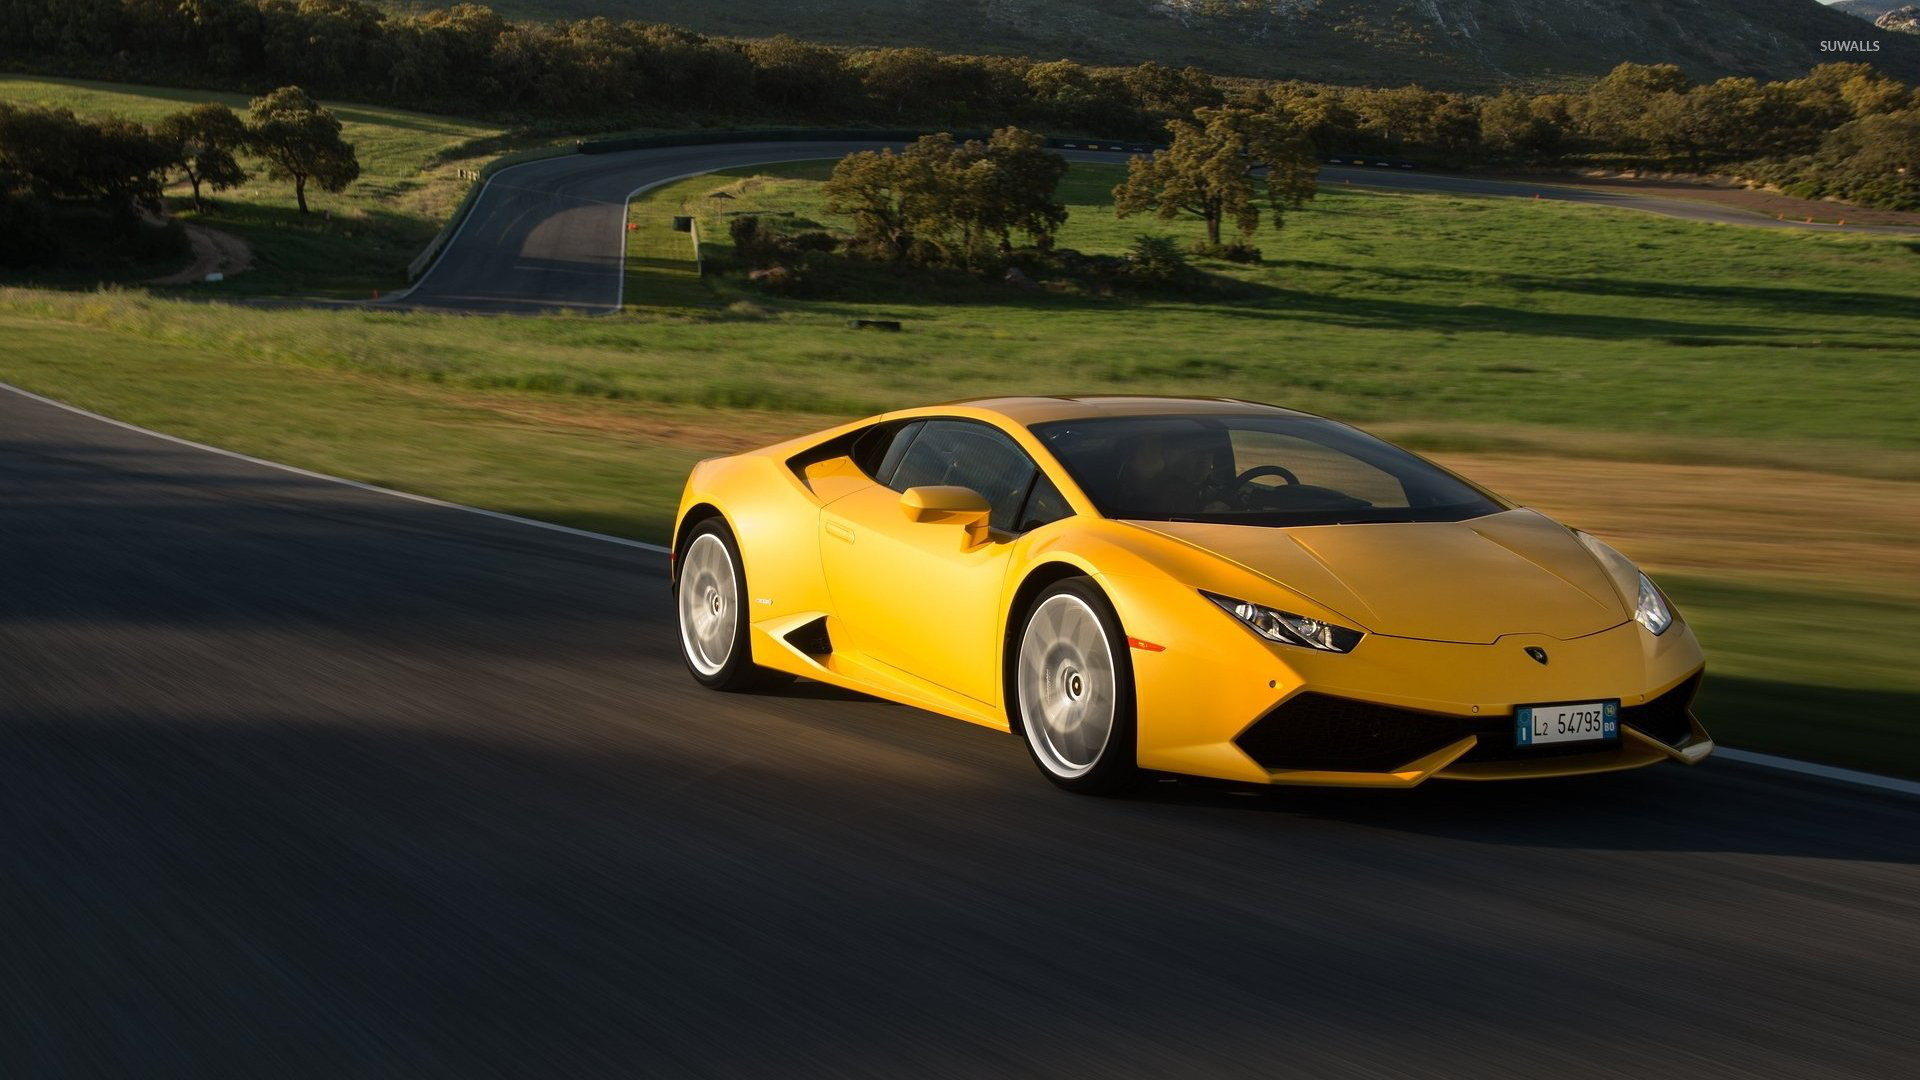 lamborghini huracan wallpapers and backgrounds - Lamborghini Huracan Wallpaper